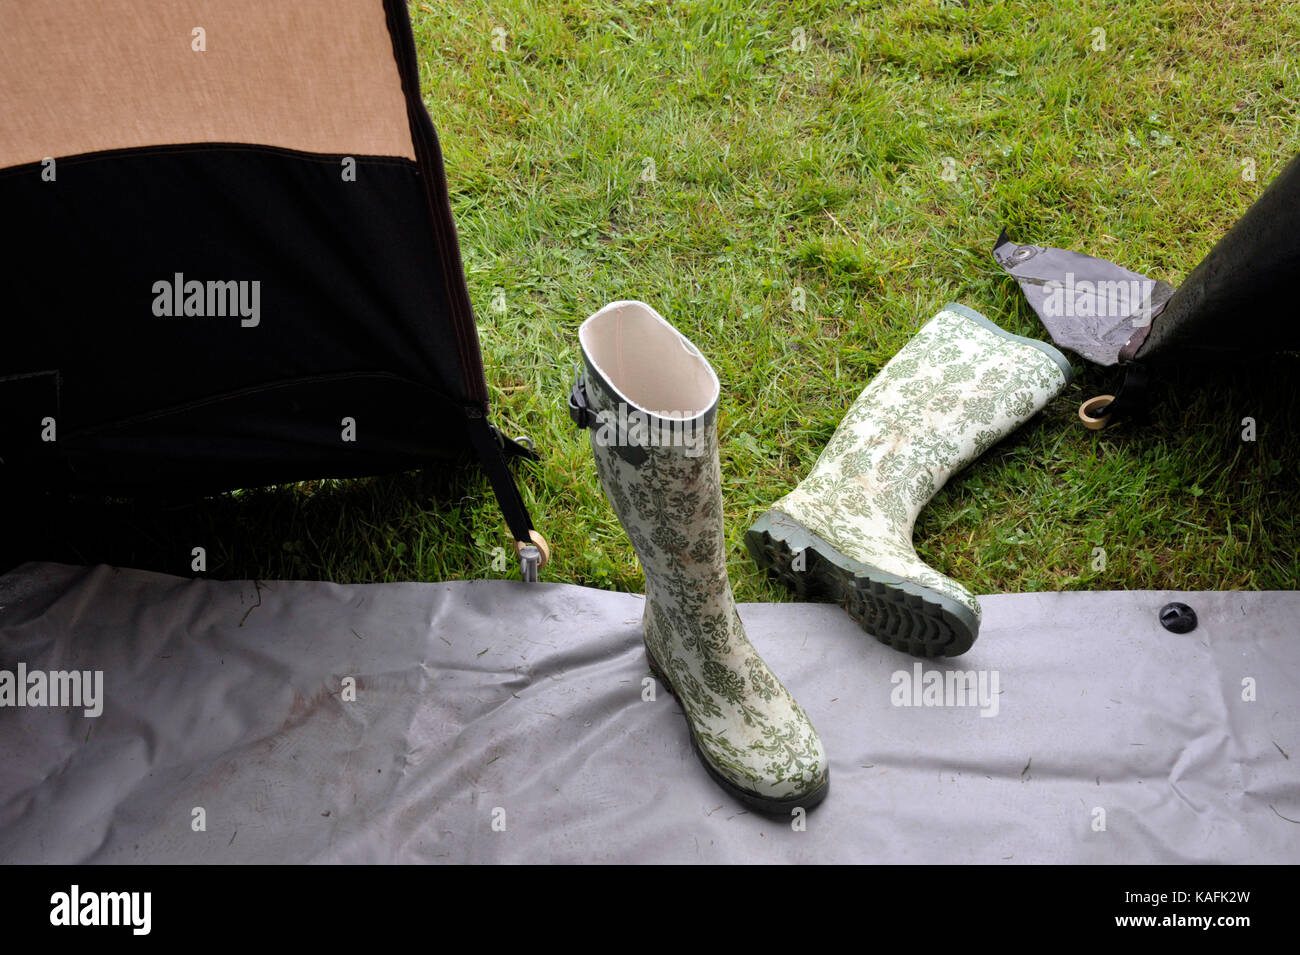 wellington boots in entrance to caravan awning - Stock Image